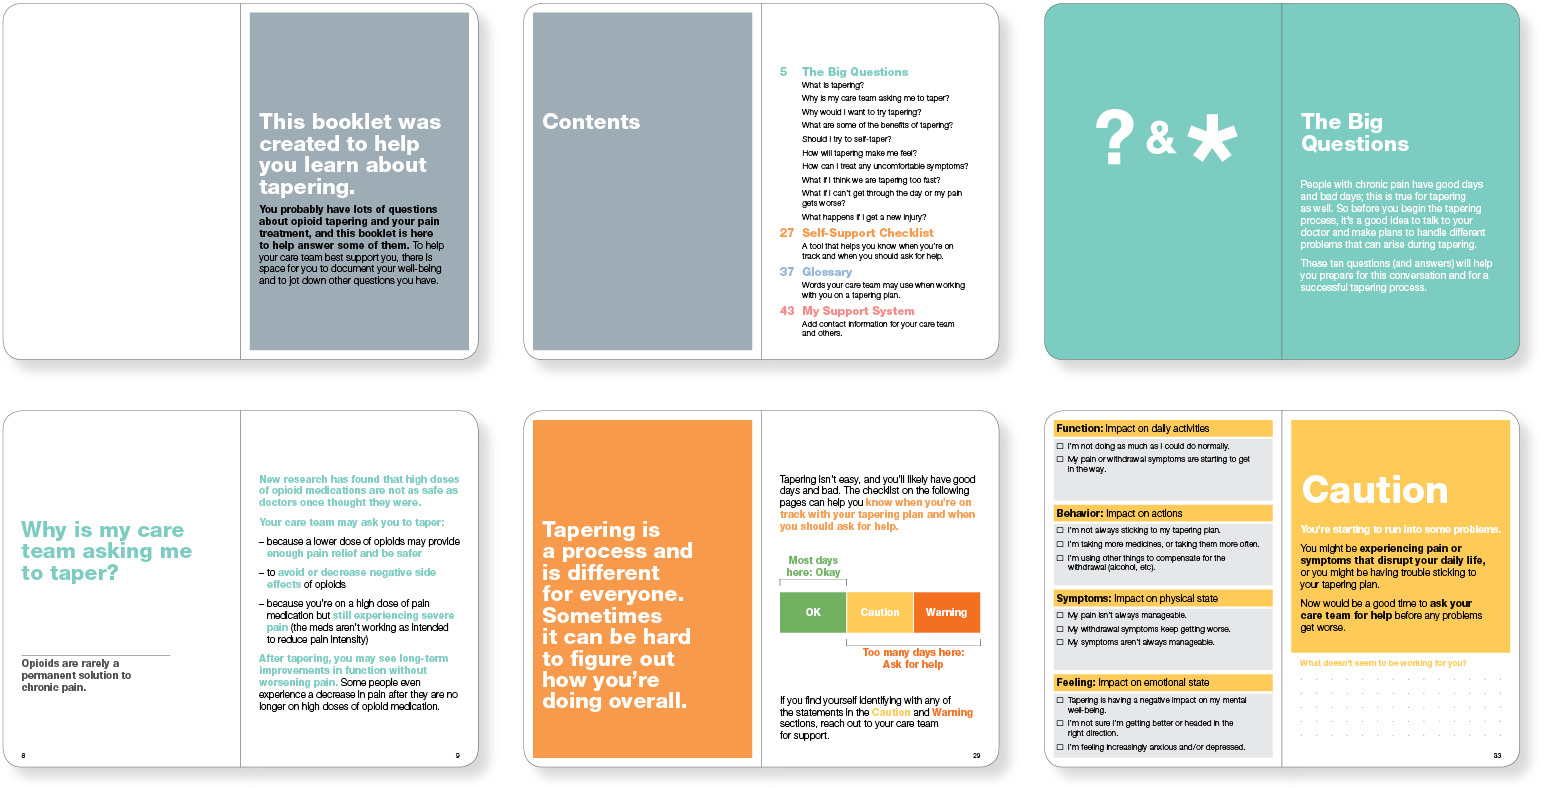 Six spreads from the opioid patient-education video companion booklet